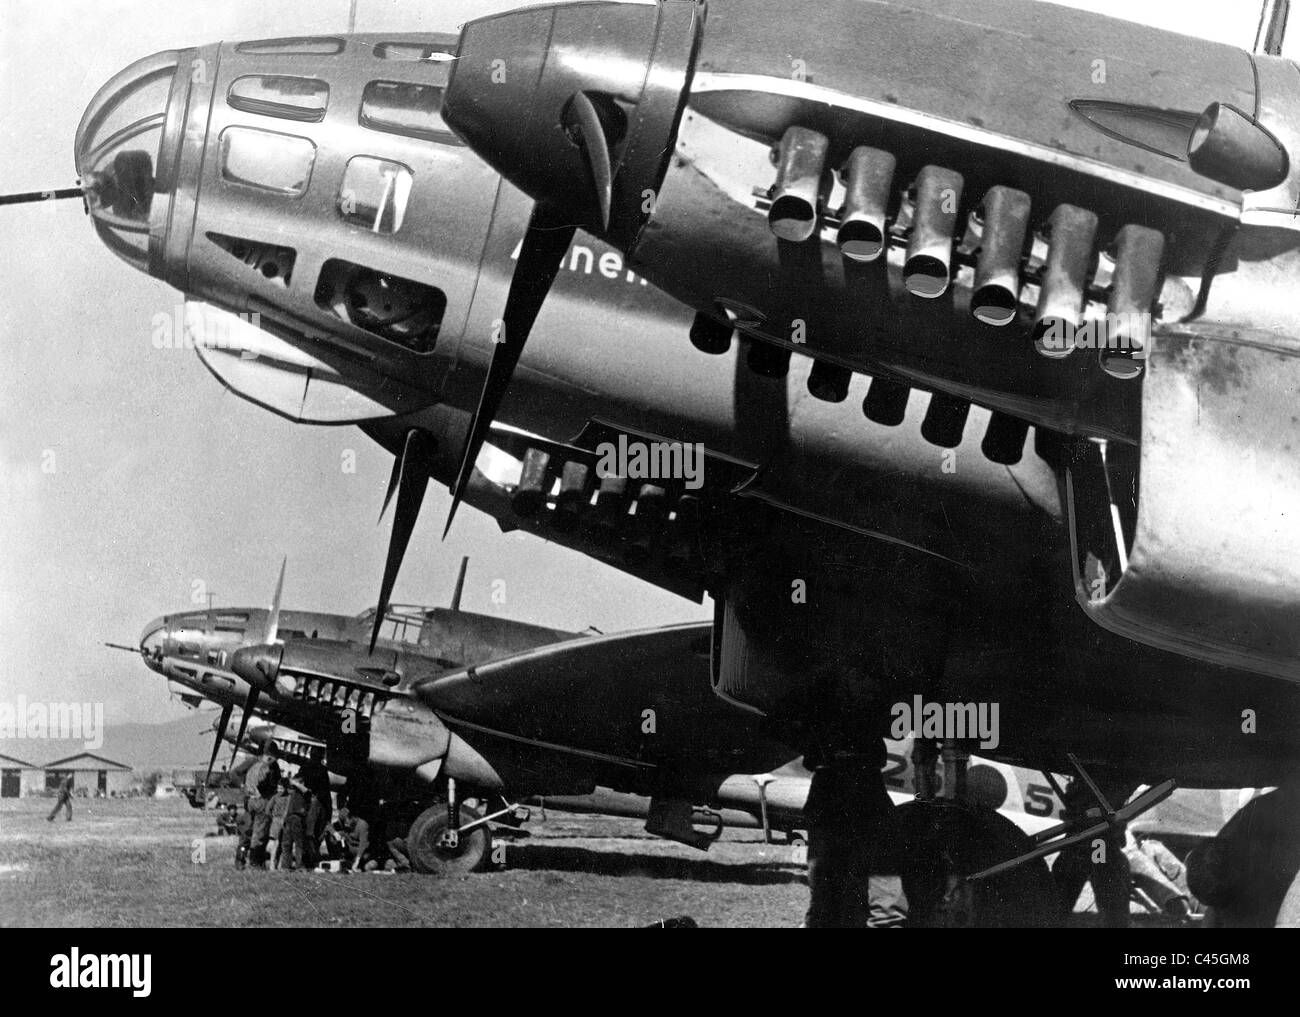 Bombers of the Condor Legion during the Spanish Civil War, 1939 - Stock Image